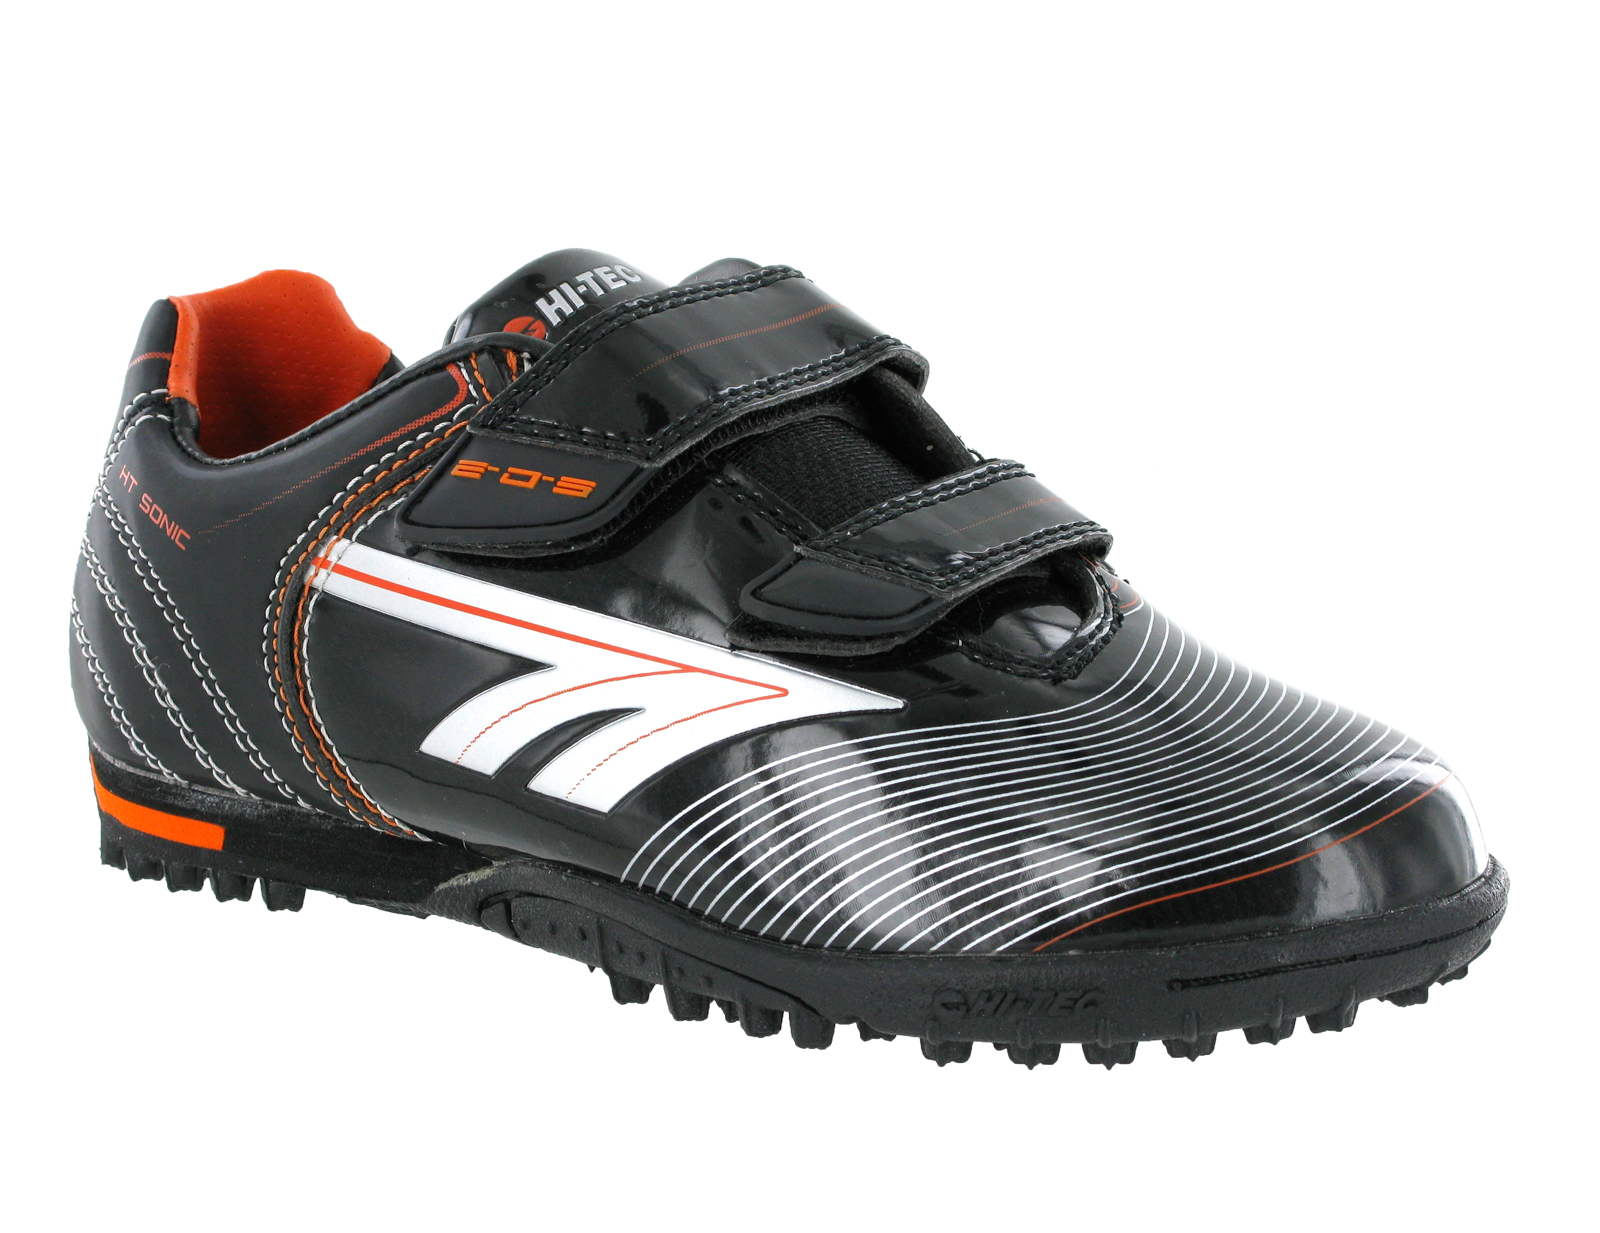 New-Boys-Hi-Tec-EOS-Velcro-Astro-Turf-Football-Soccer-Velcro-Boots-Size-10-6-UK